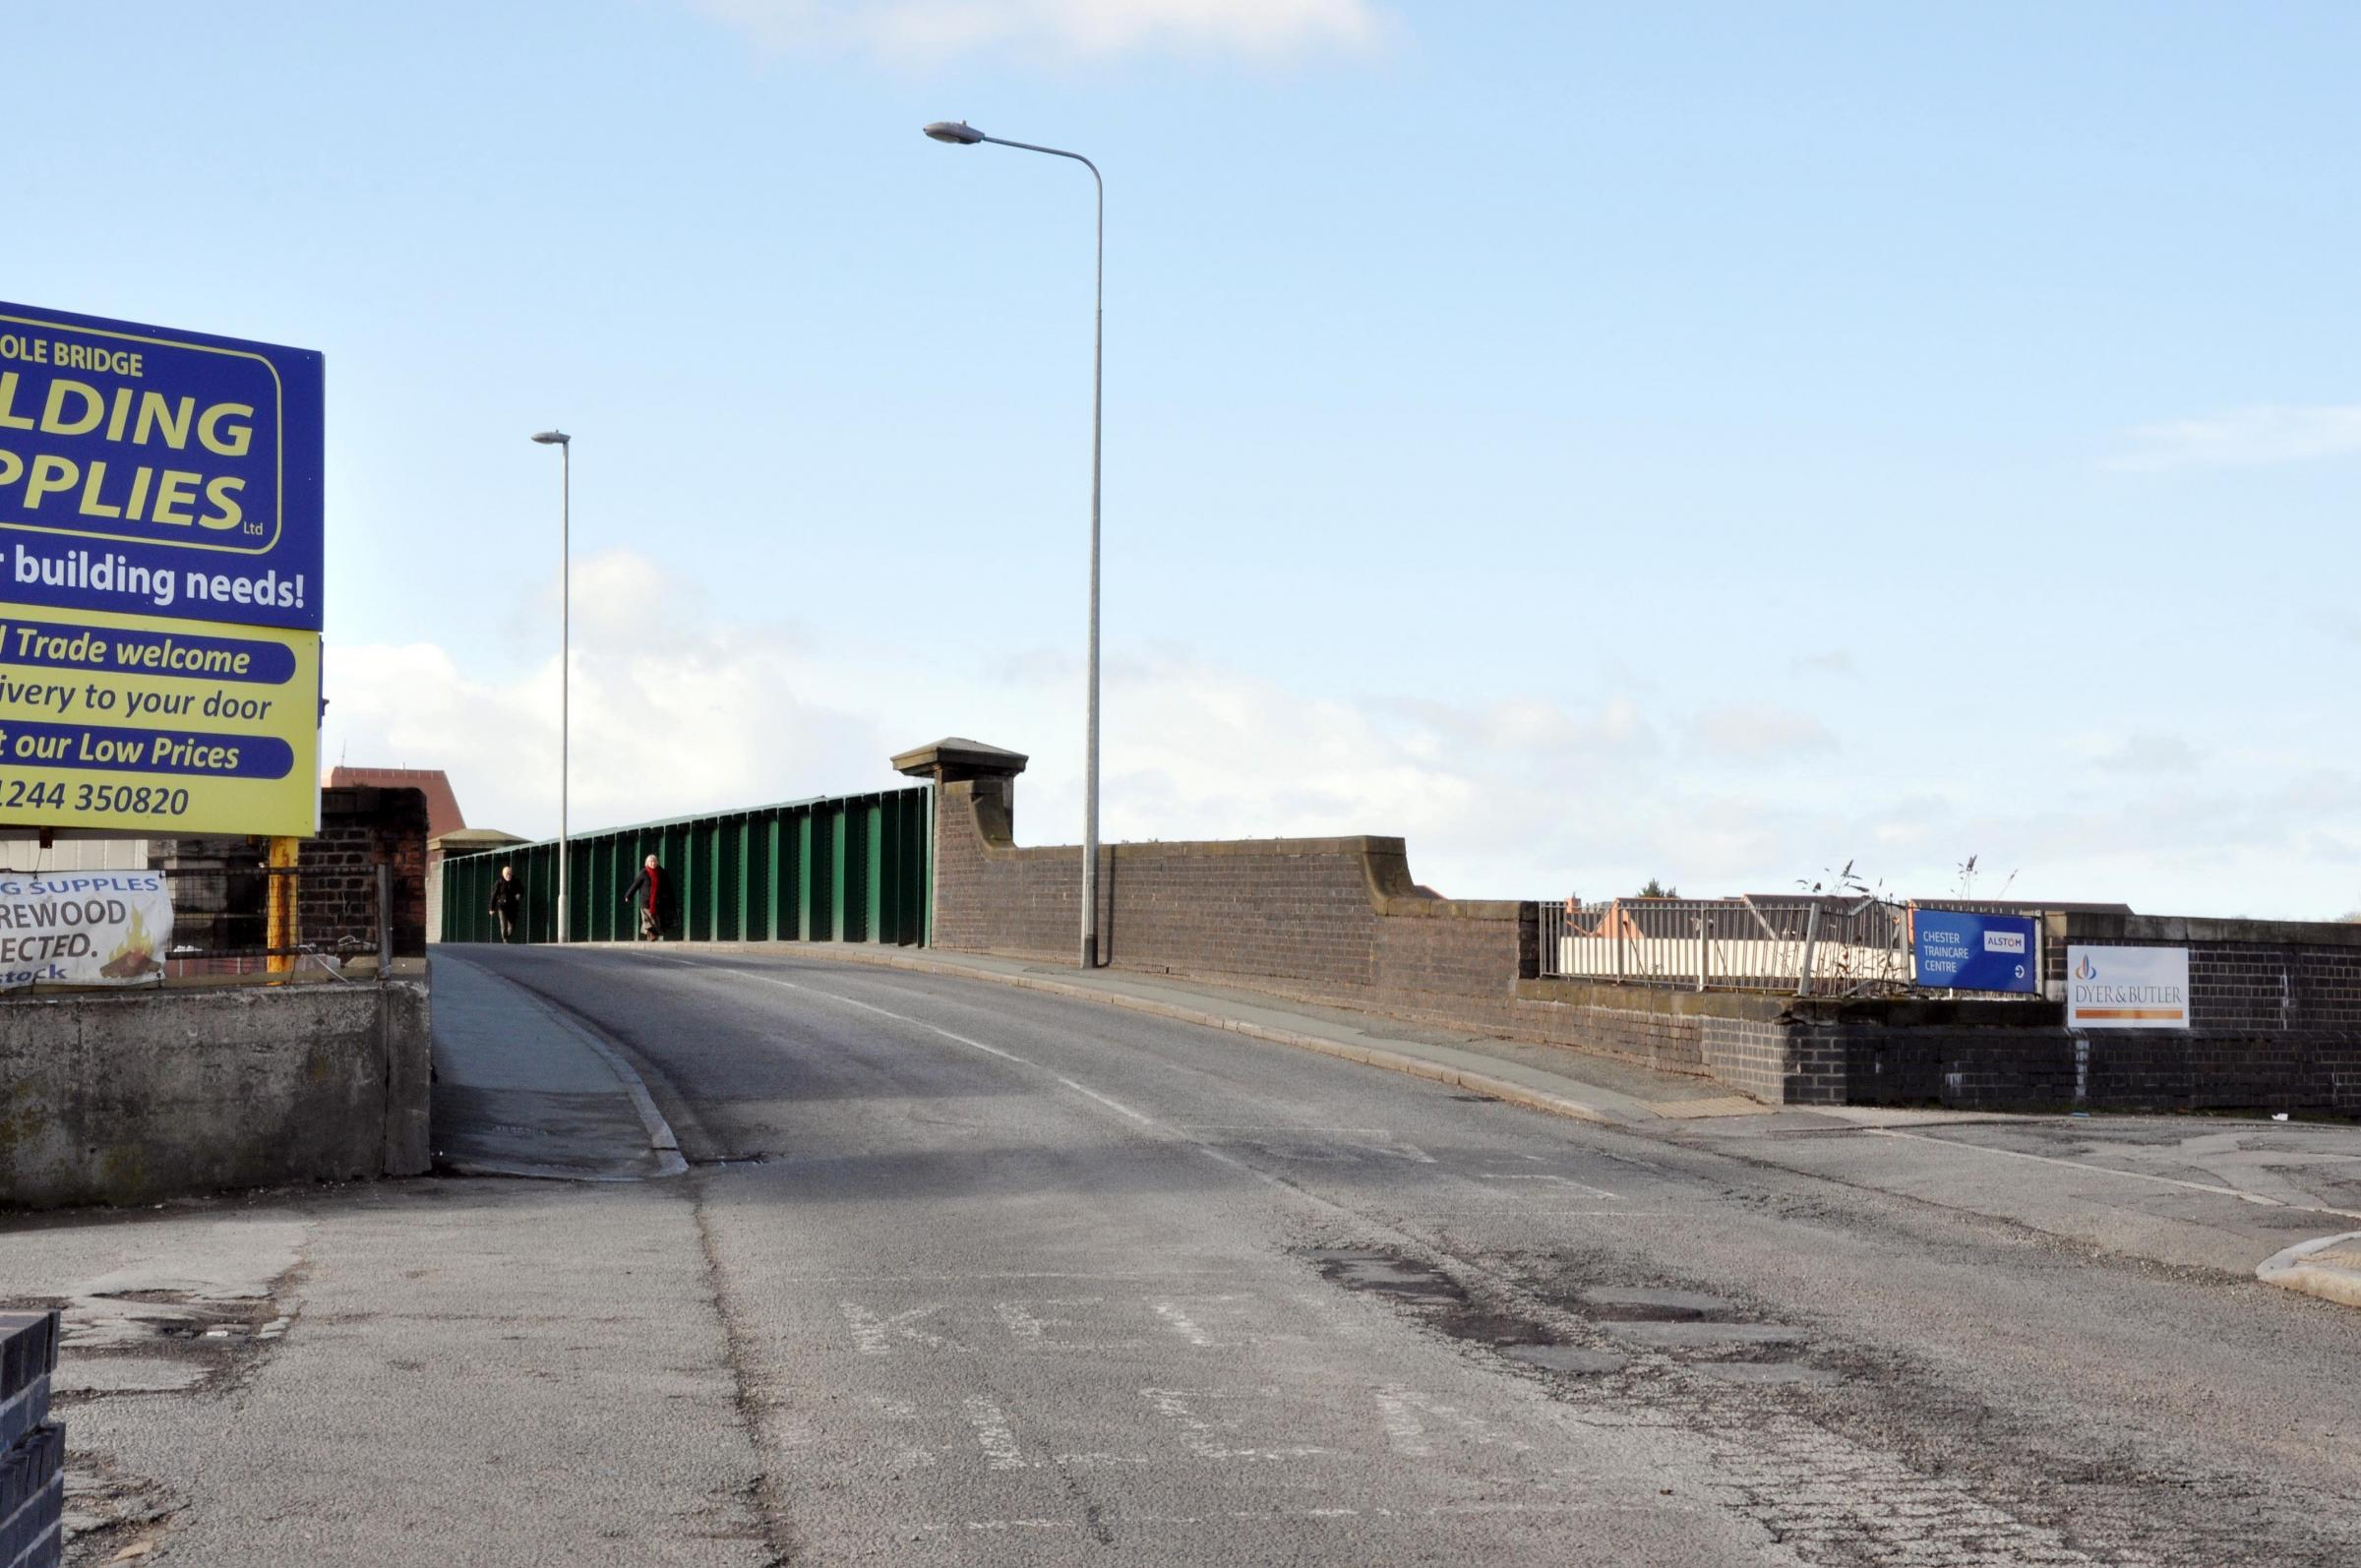 The railway bridge on Hoole Road.